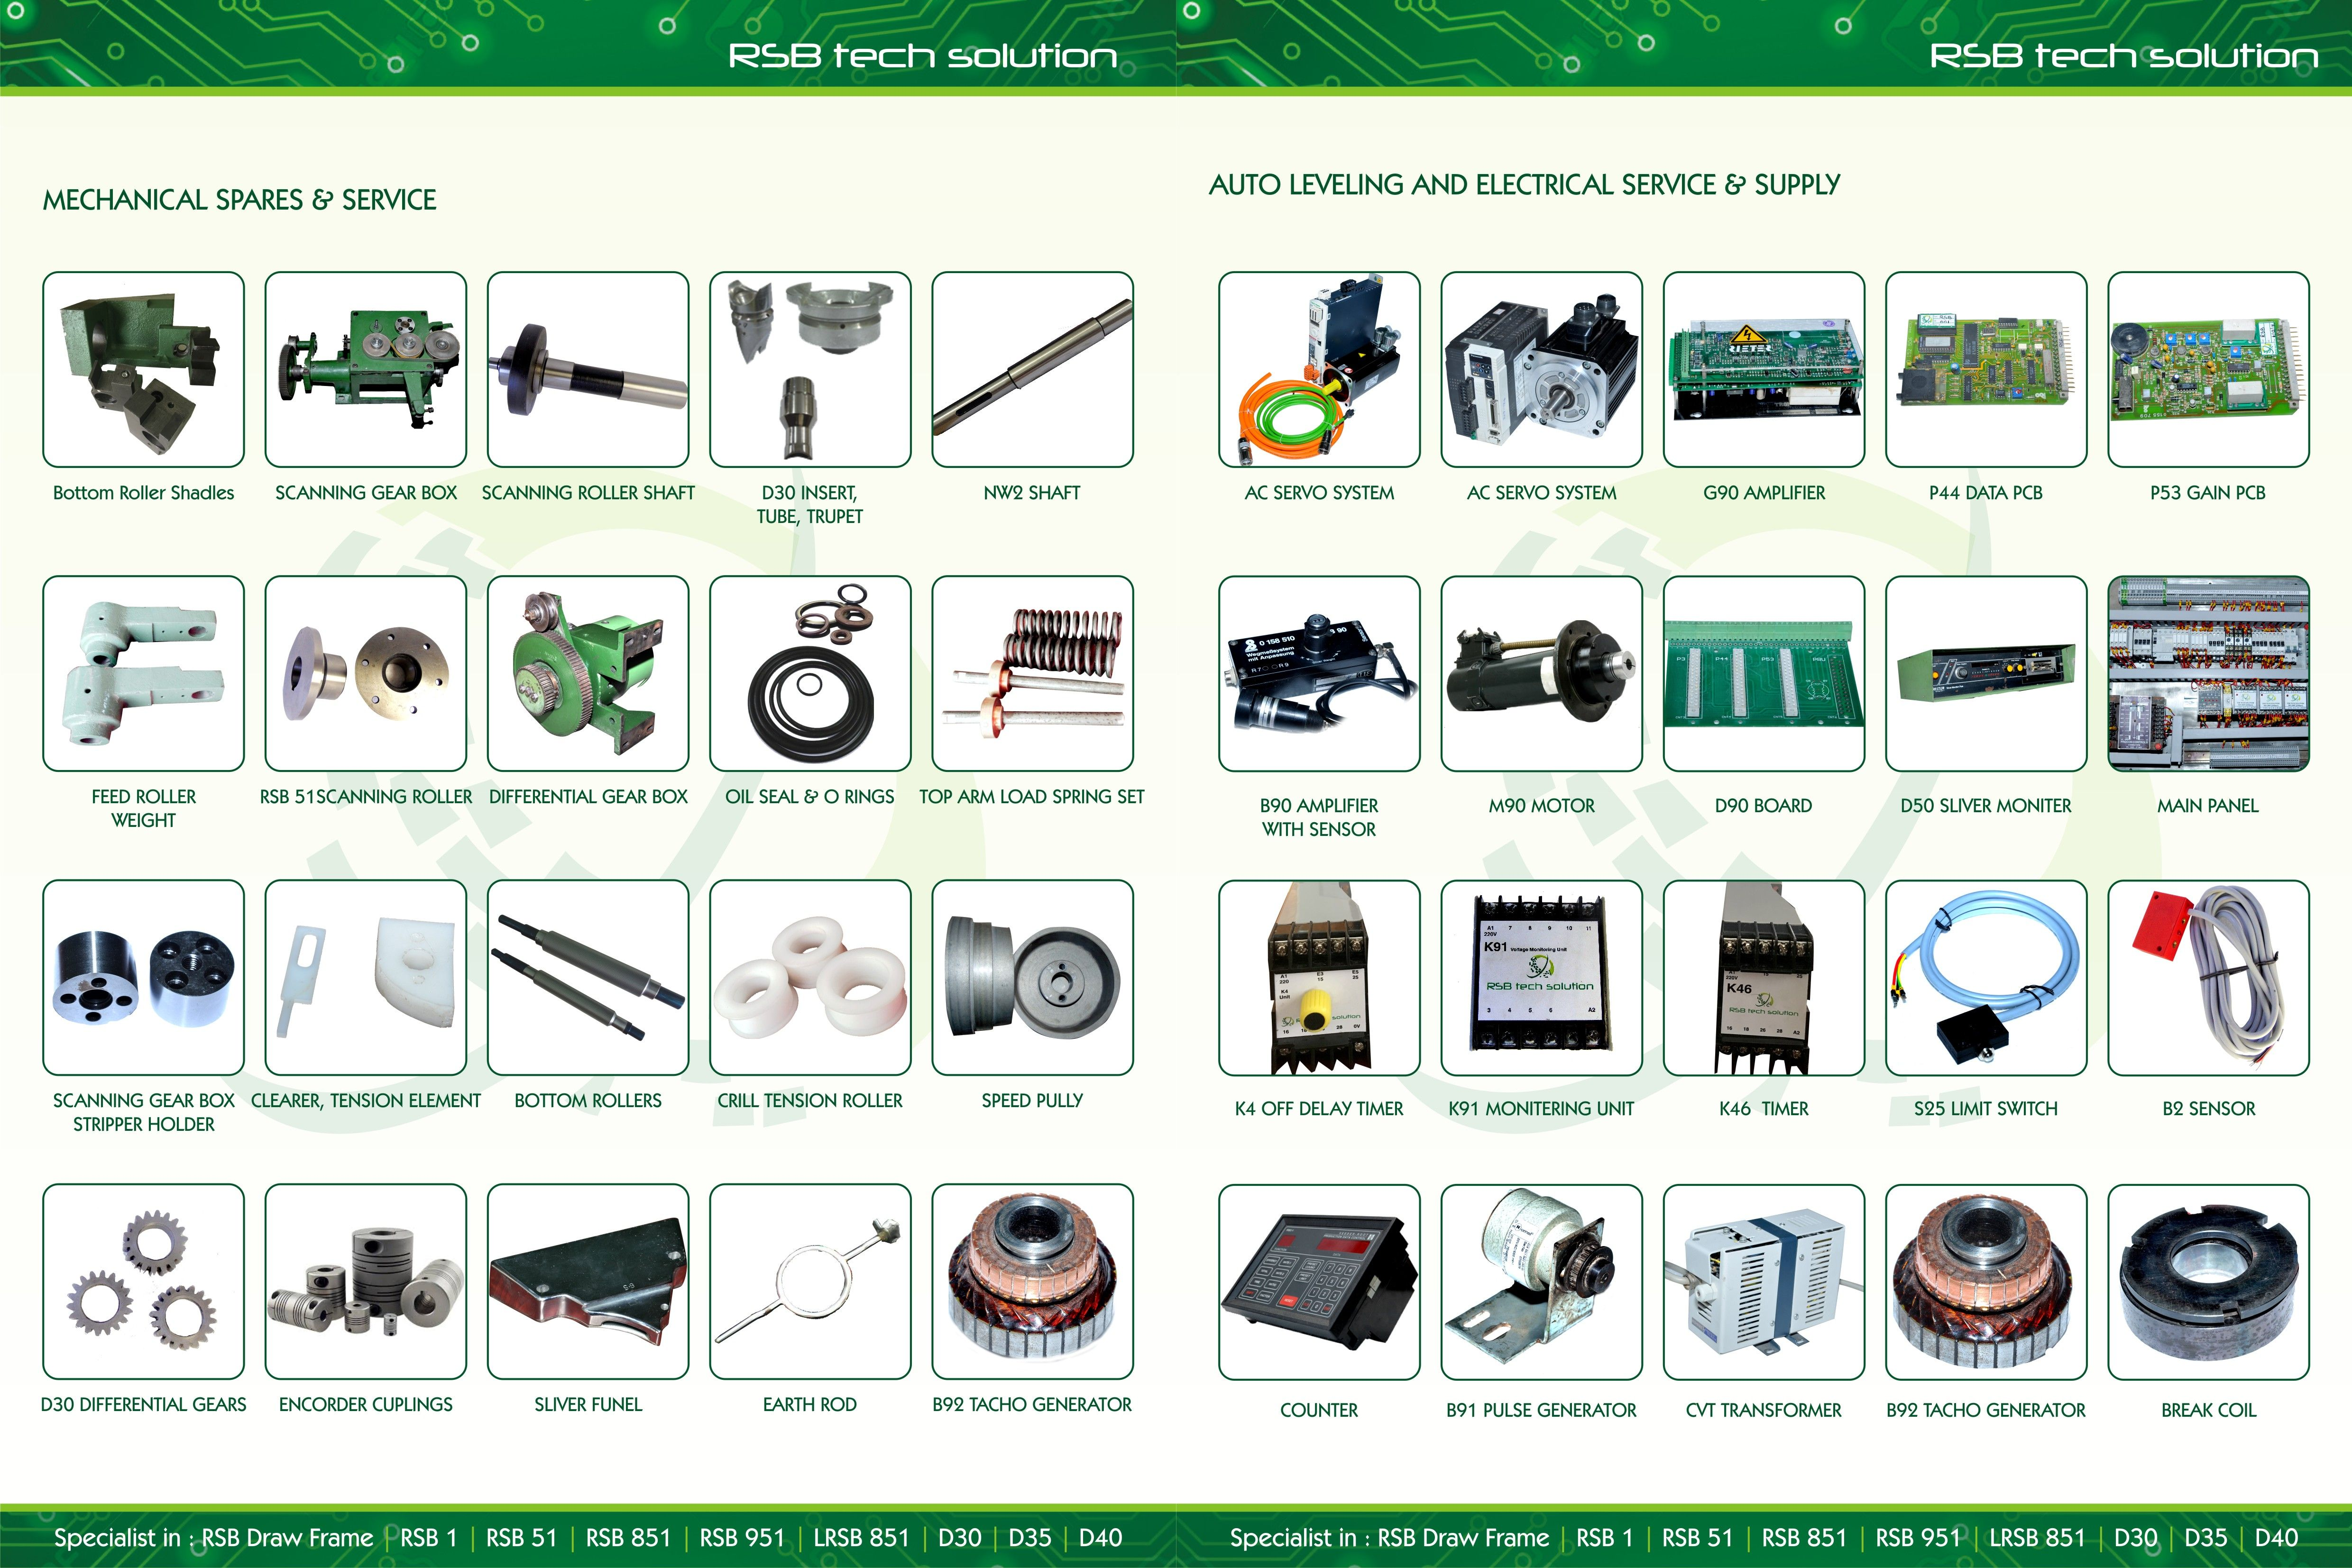 RSB Tech Solution Mechanical Spares, Auto Leveling and